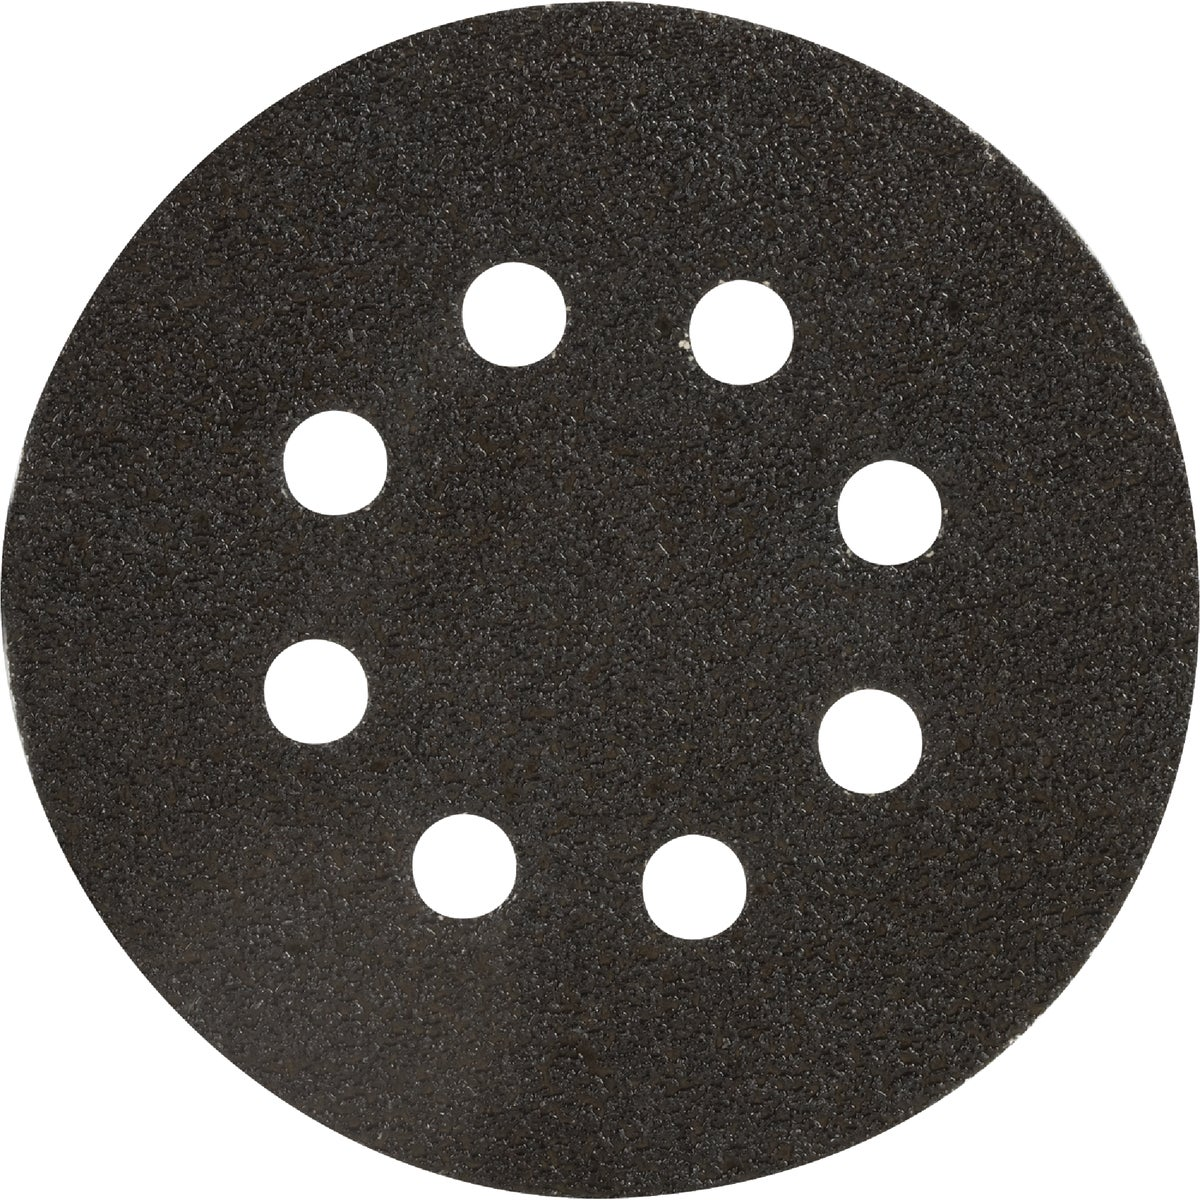 4PK 8HL 50G SANDPAPER - 353913 by Ali Industries Inc